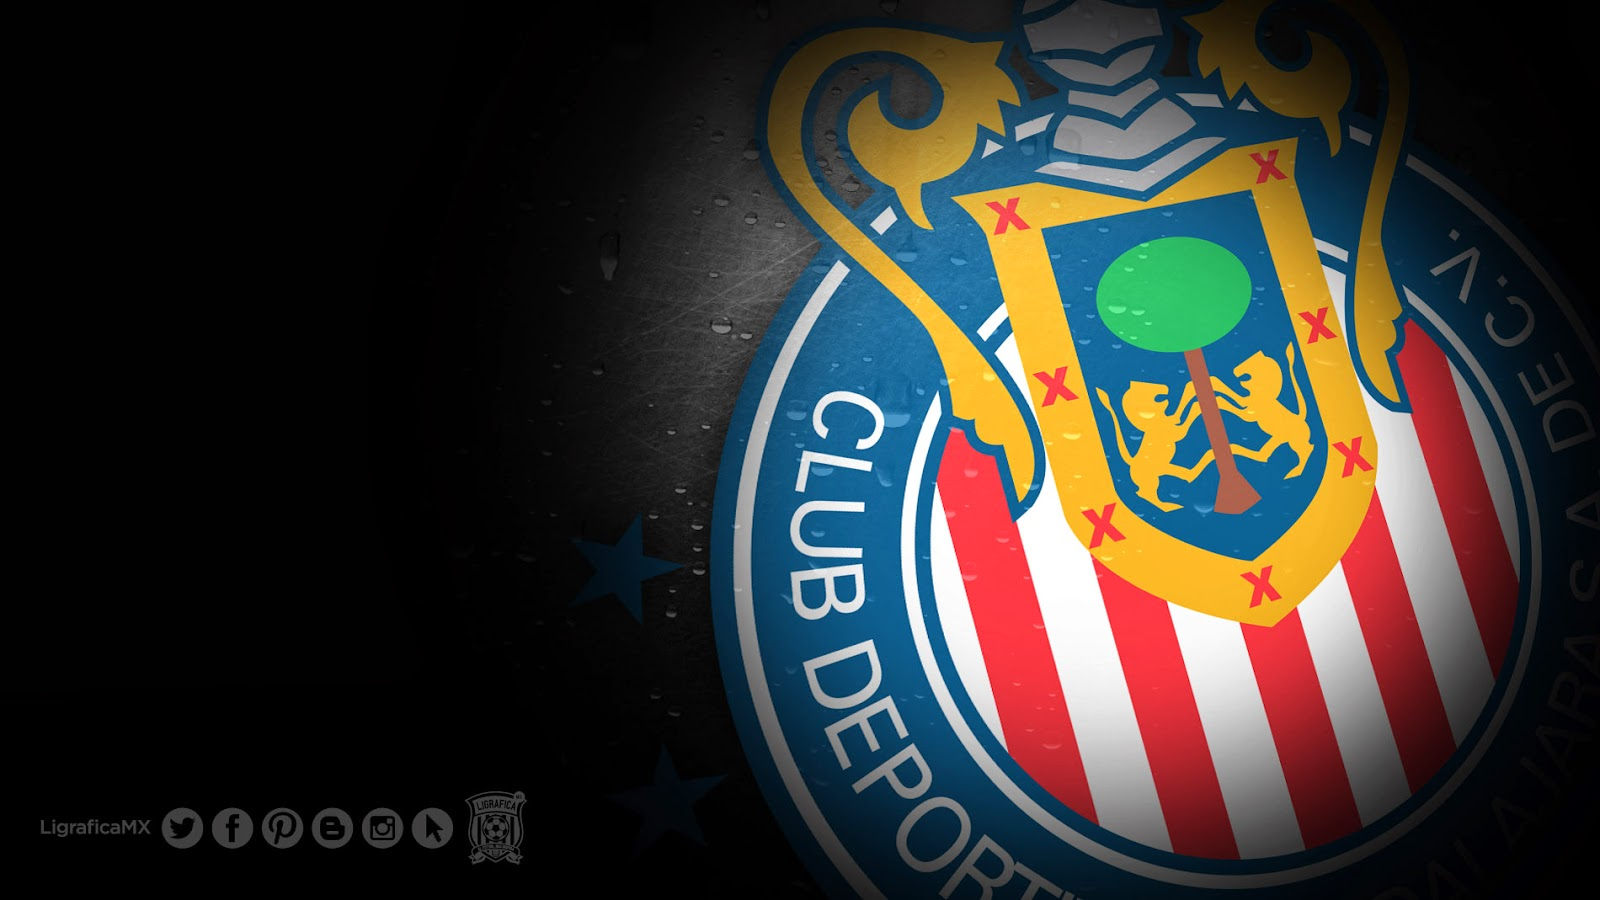 CD Guadalajara Wallpaper 21   1600 X 900 stmednet 1600x900